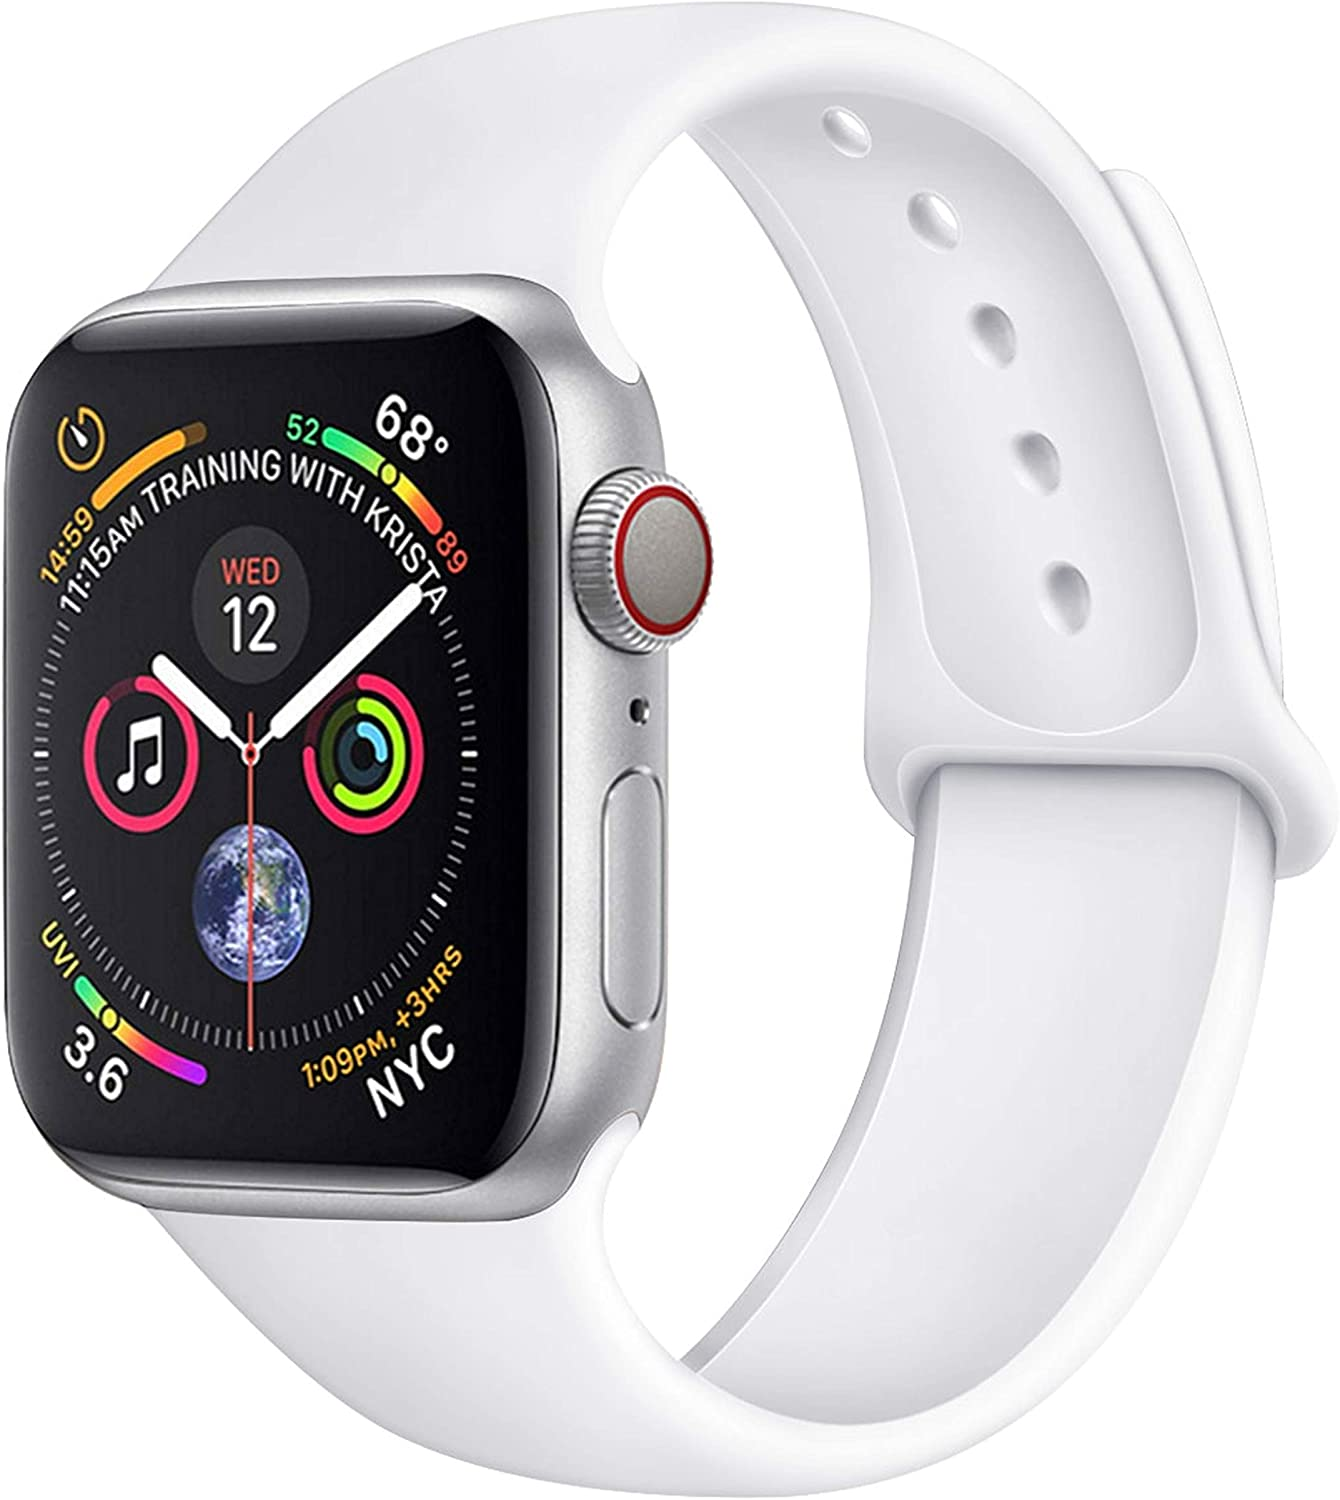 Compatible with Apple Watch Bands 38mm 40mm 42mm 44mm, Soft Silicone Sport Loop Bands Compatible with iwatch Series 6/5/4/3/2/1/SE, Sports Edition for Both Men & Women (White, 38/40mm M/L)